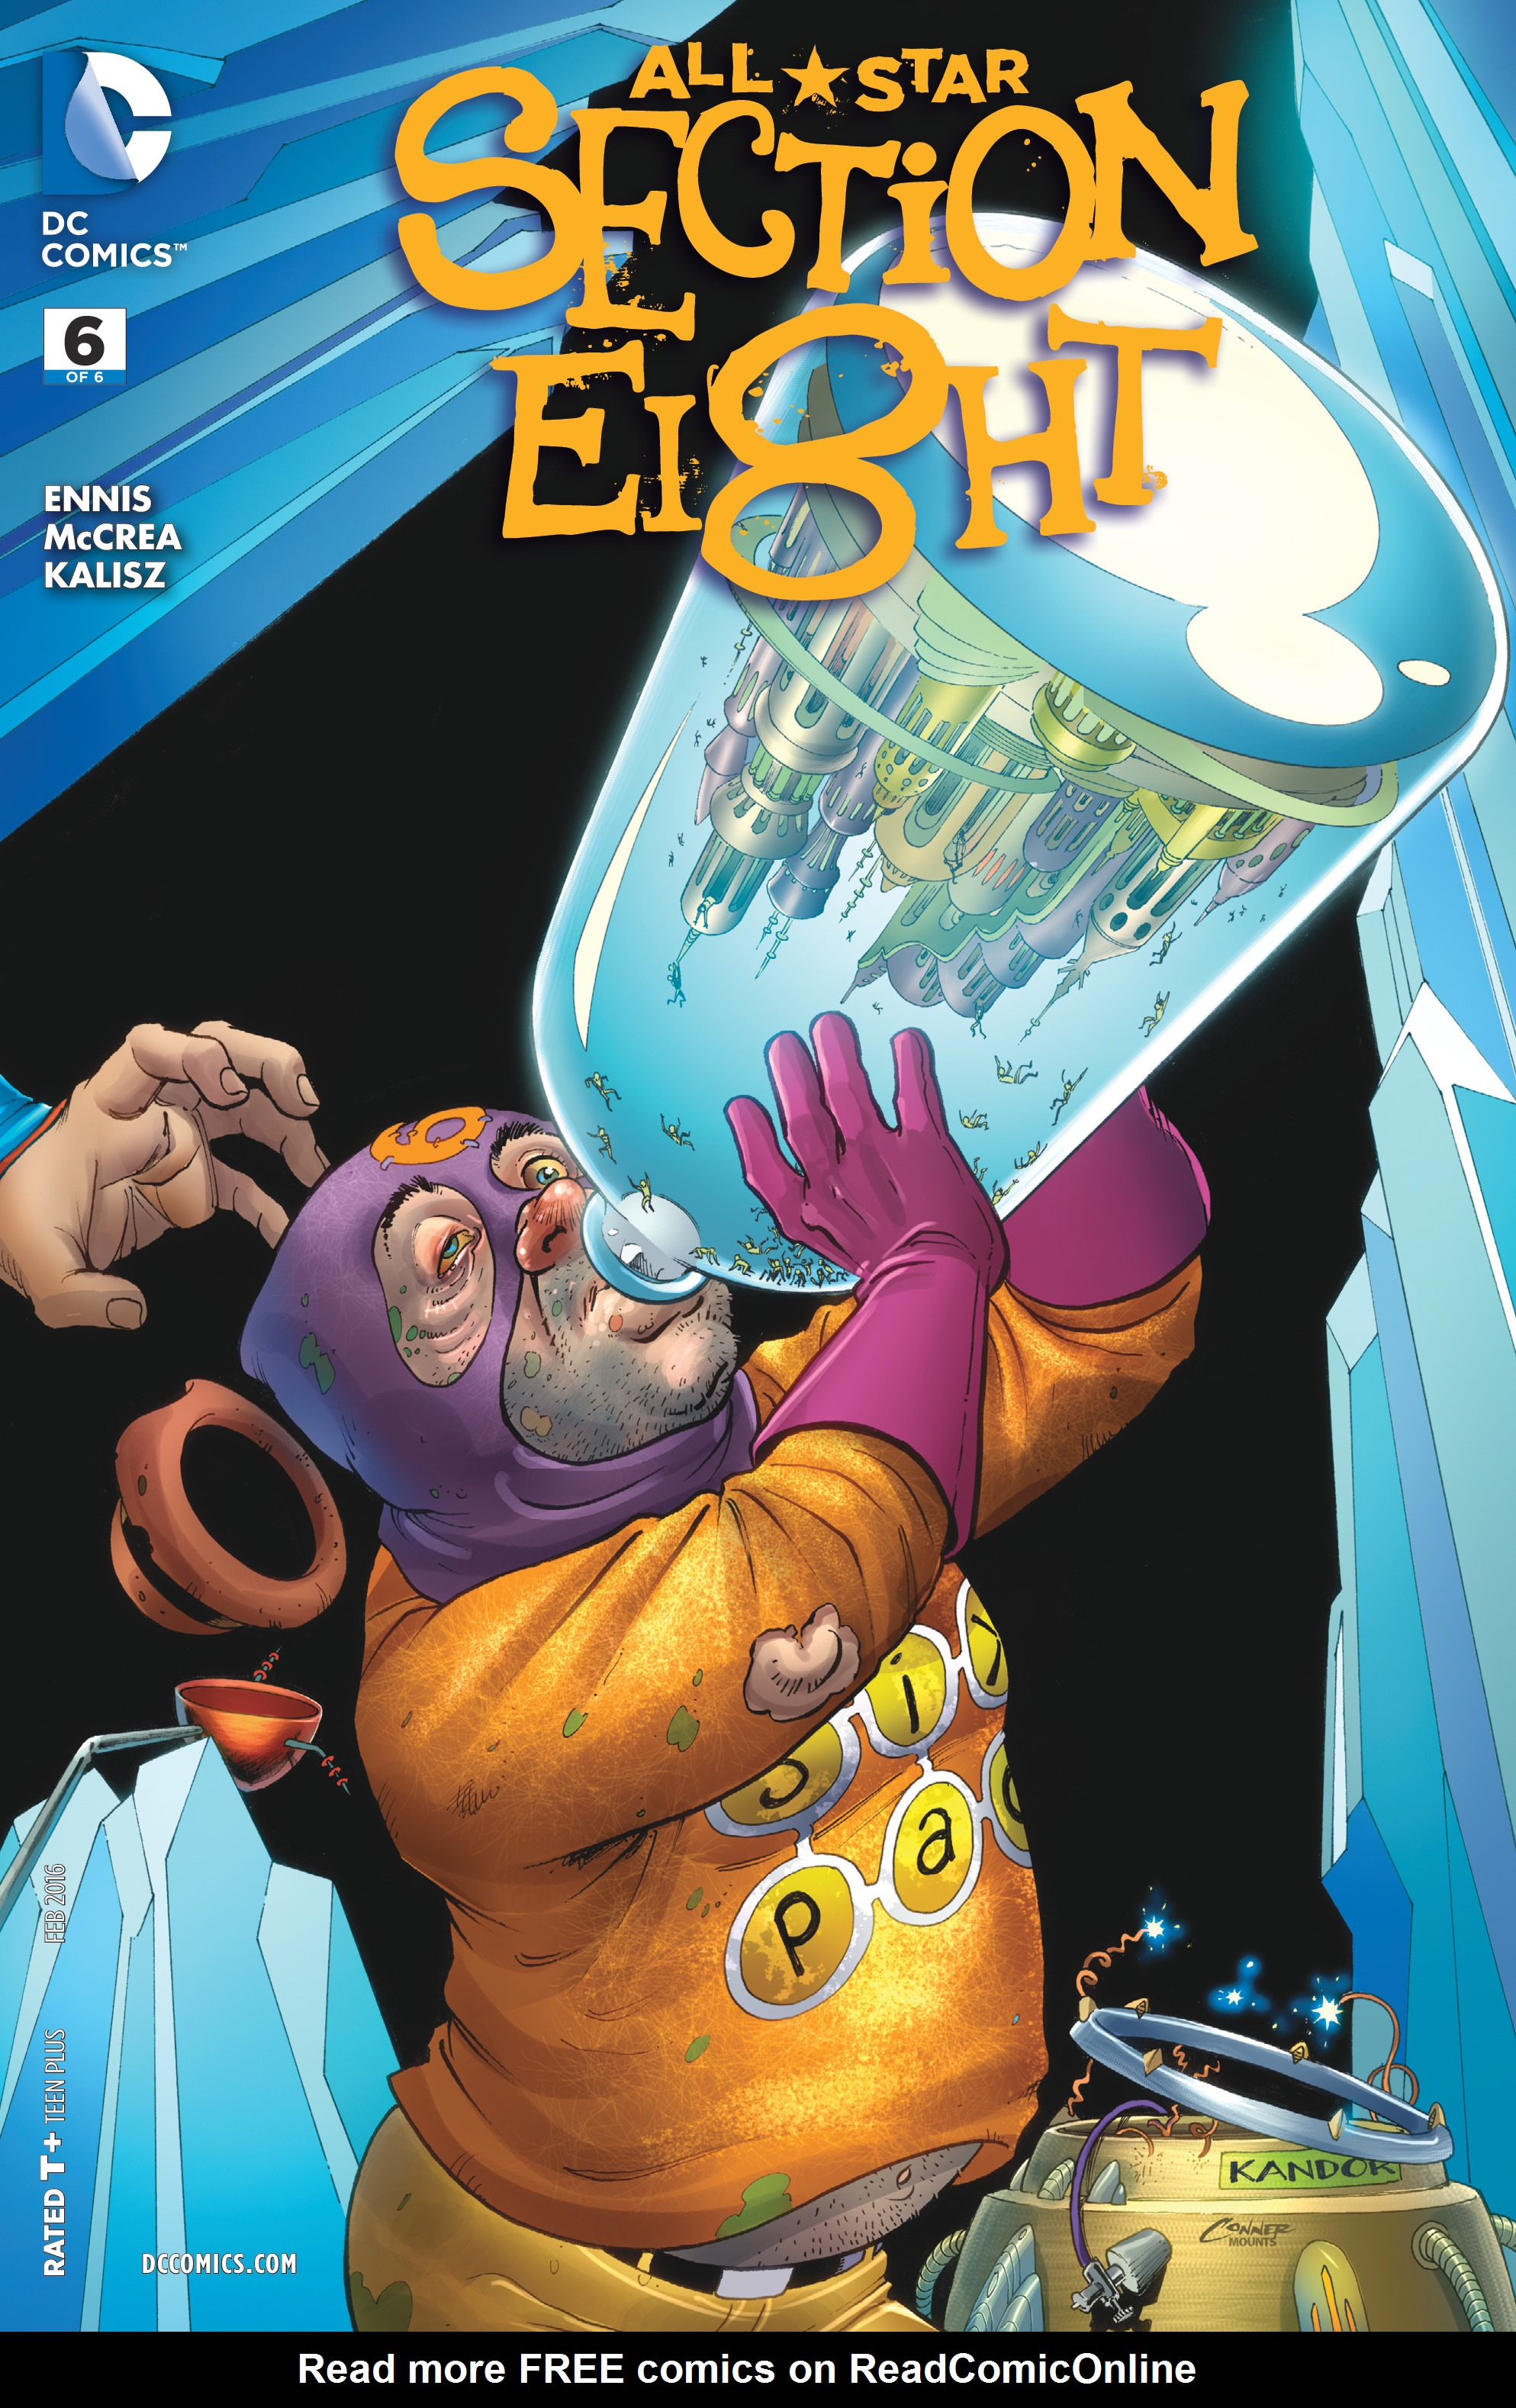 All-Star Section Eight 6 Page 1